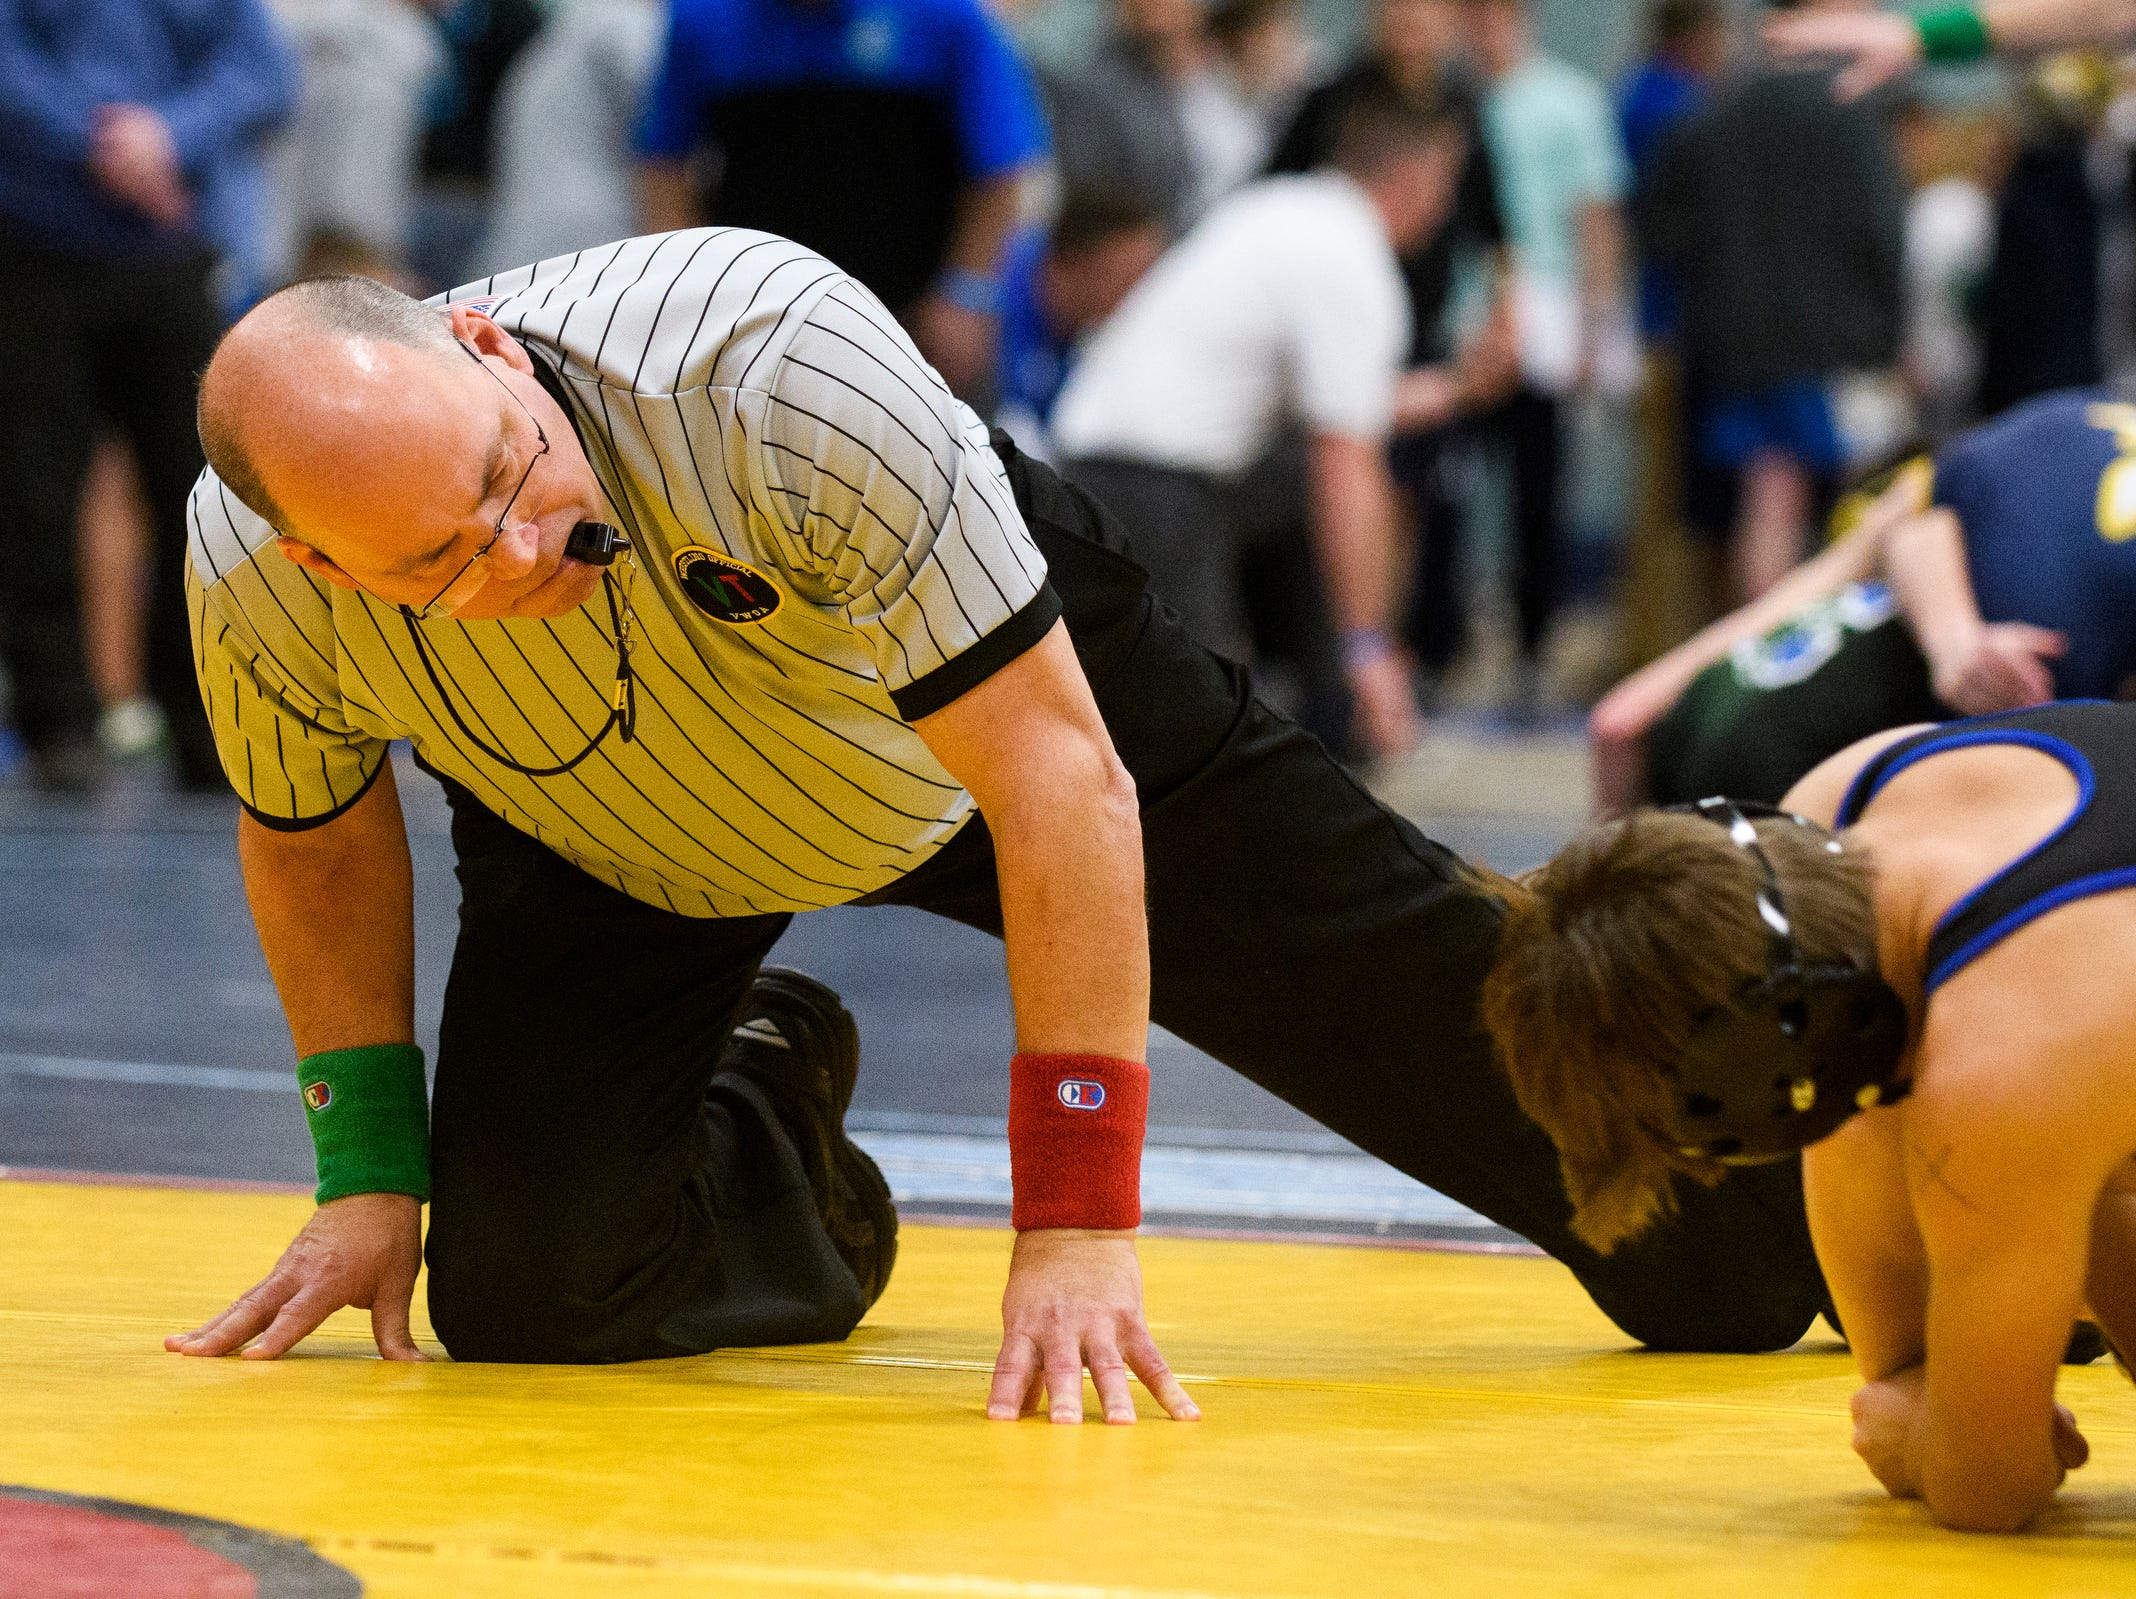 A referee looks for a pin down during the Michael J. Baker Essex Classic wrestling tournament at Essex High School on Friday afternoon January 18, 2019 in Essex, Vermont.